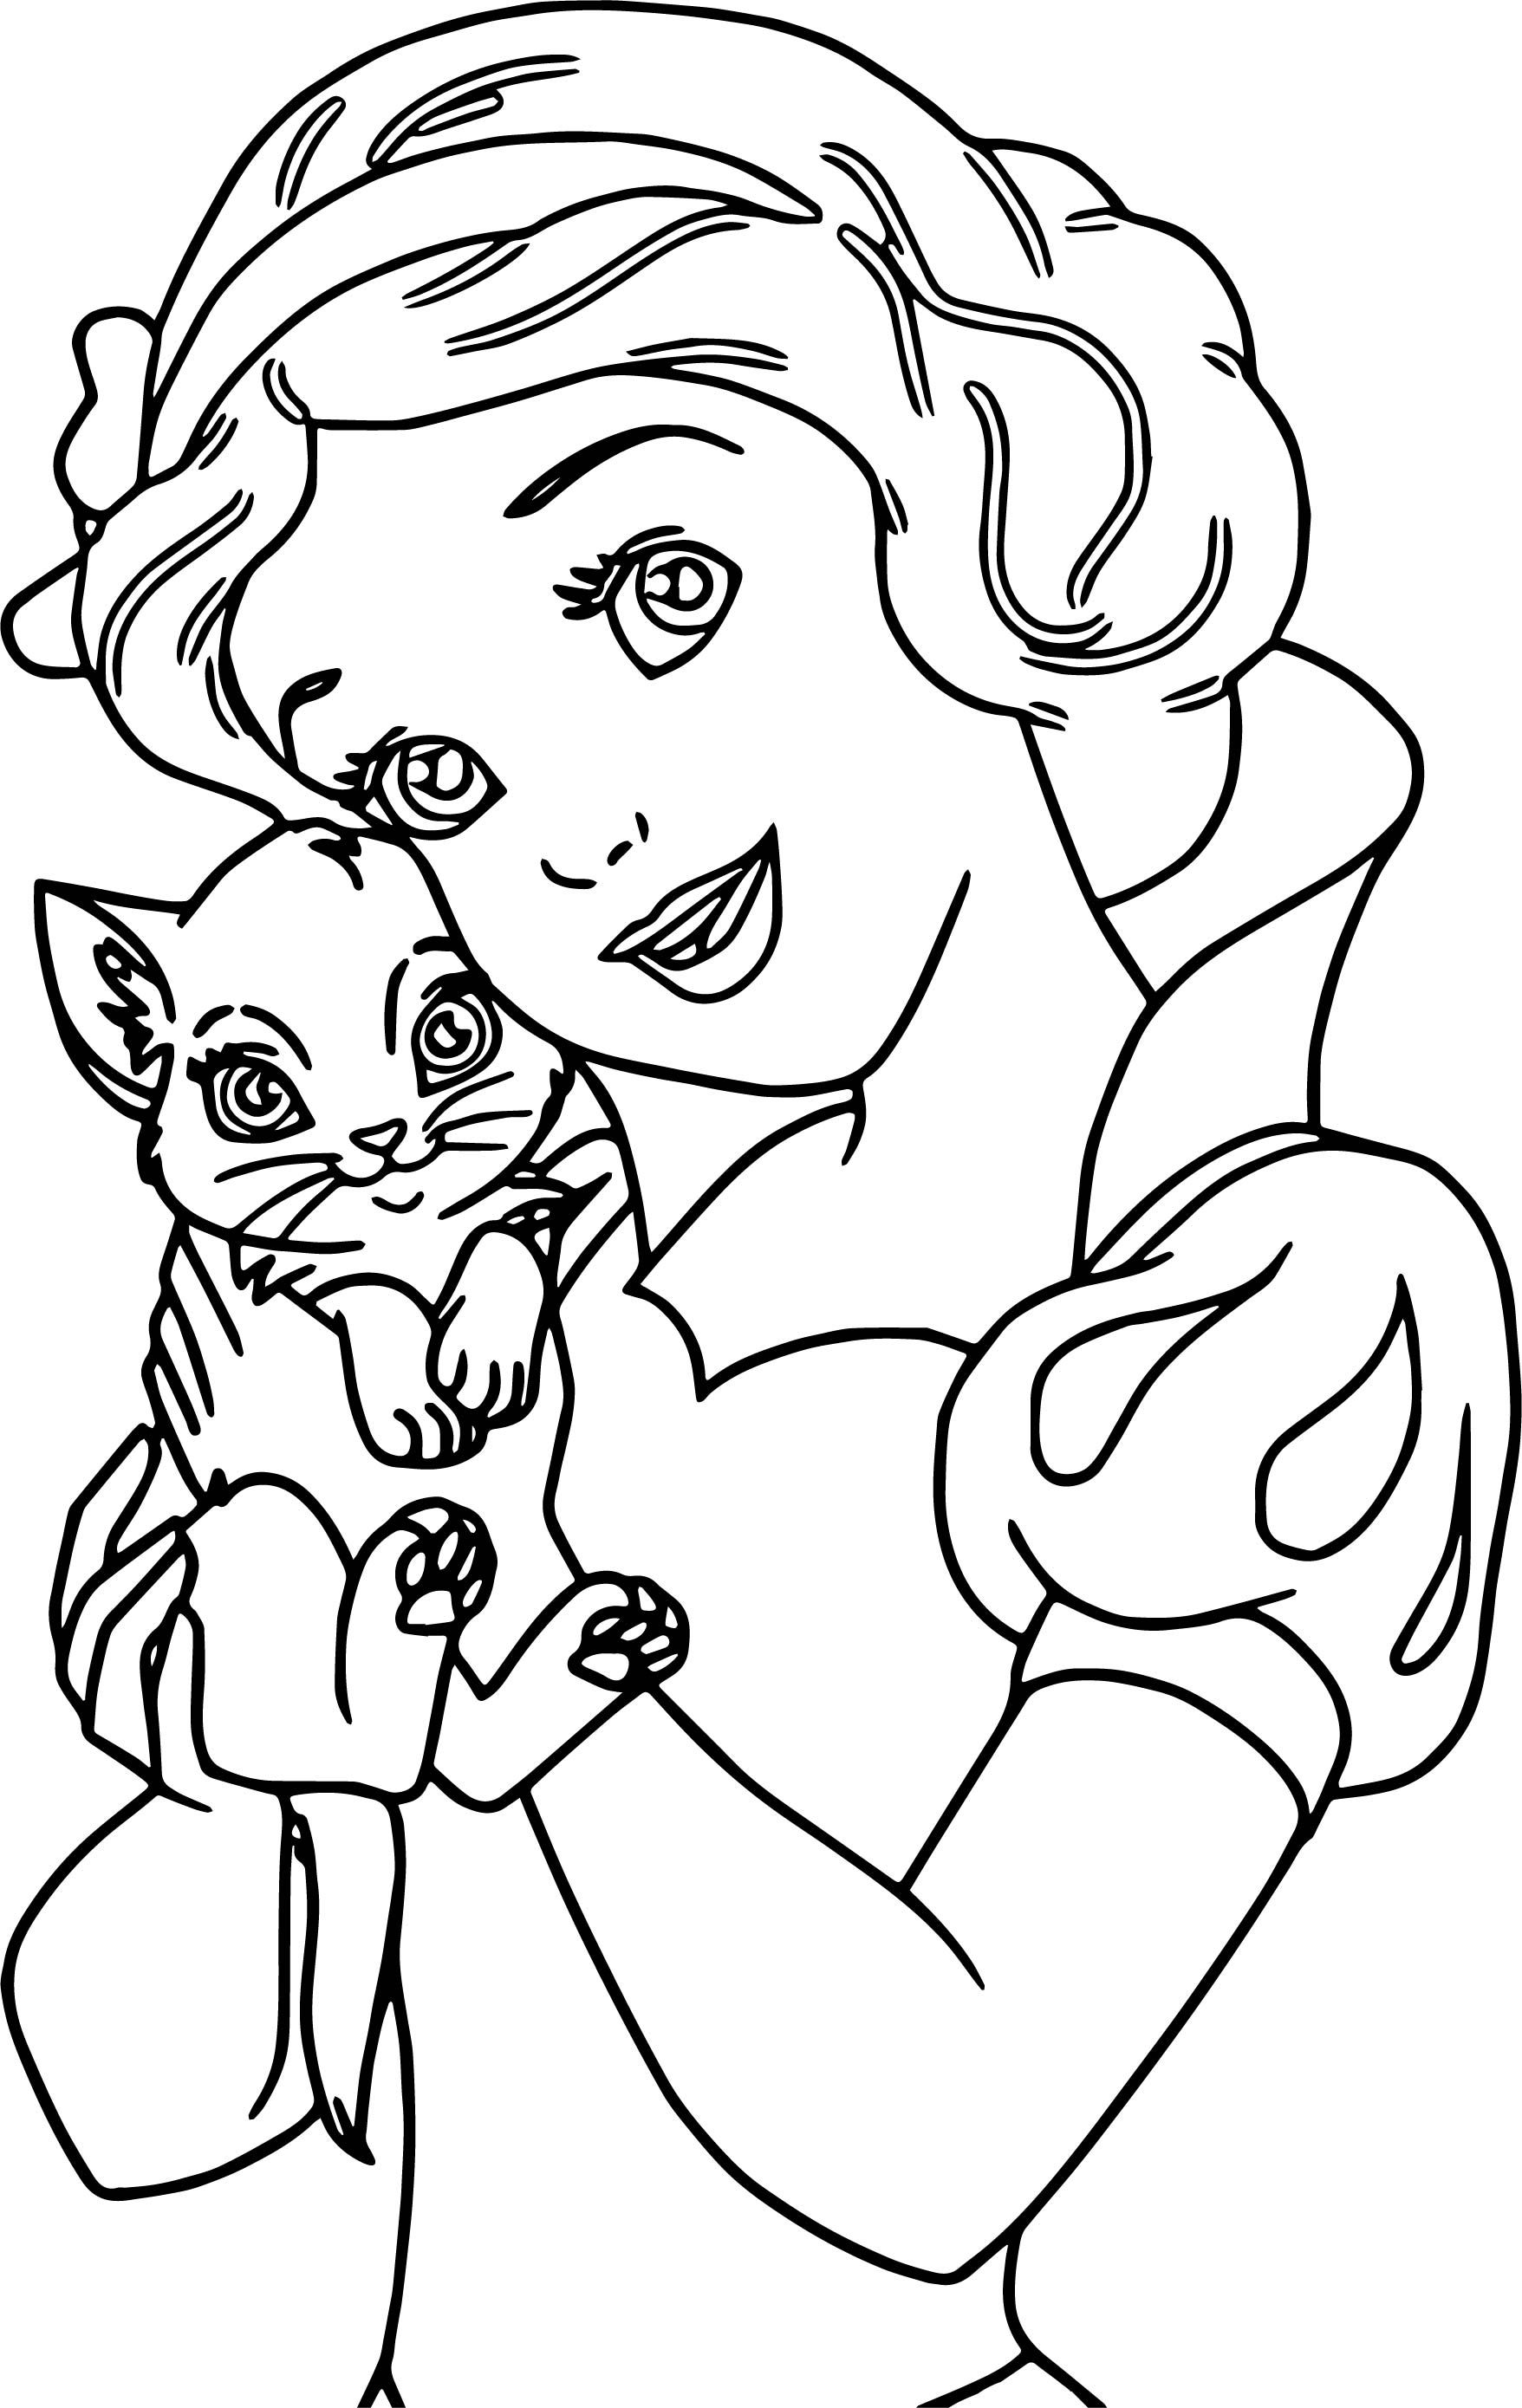 Snow White My Cat Coloring Page Cat Coloring Page Snow White Coloring Pages